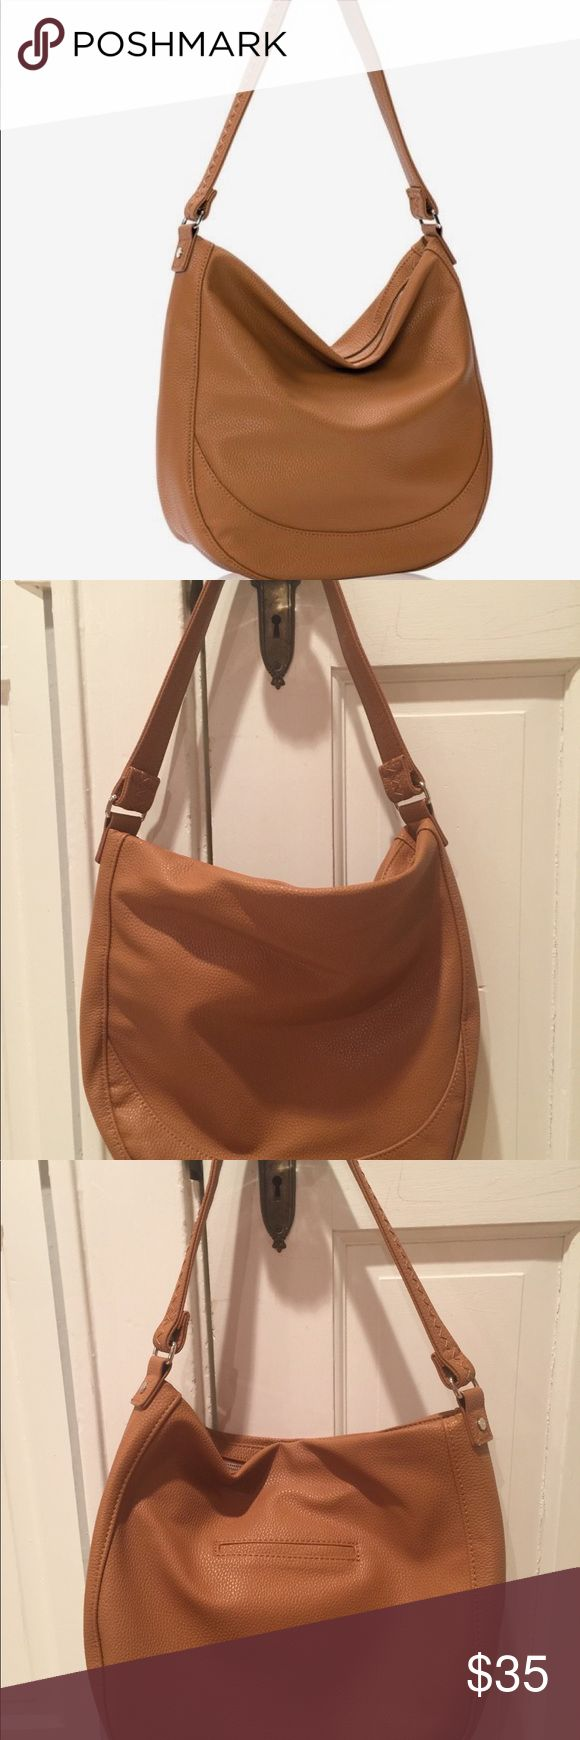 """Thirty-One Mini Hobo Bag in Caramel ❤️ Stylish and slouchy ❤️ Midway Hobo bag is the perfect everyday bag you can take to the office or out for a night on the town. Only carried two times and in excellent condition. zipper closure, 3 interior pockets and a hidden exterior cell phone pocket.  Pebble Faux Leather Poly Satin Lining Interior zipper pocket and 2 interior flat pockets Hidden exterior cell phone pocket Zig-zag stitch detail on handle Approx. 12.5""""H x 12""""L x 3.5""""D Bags Hobos"""